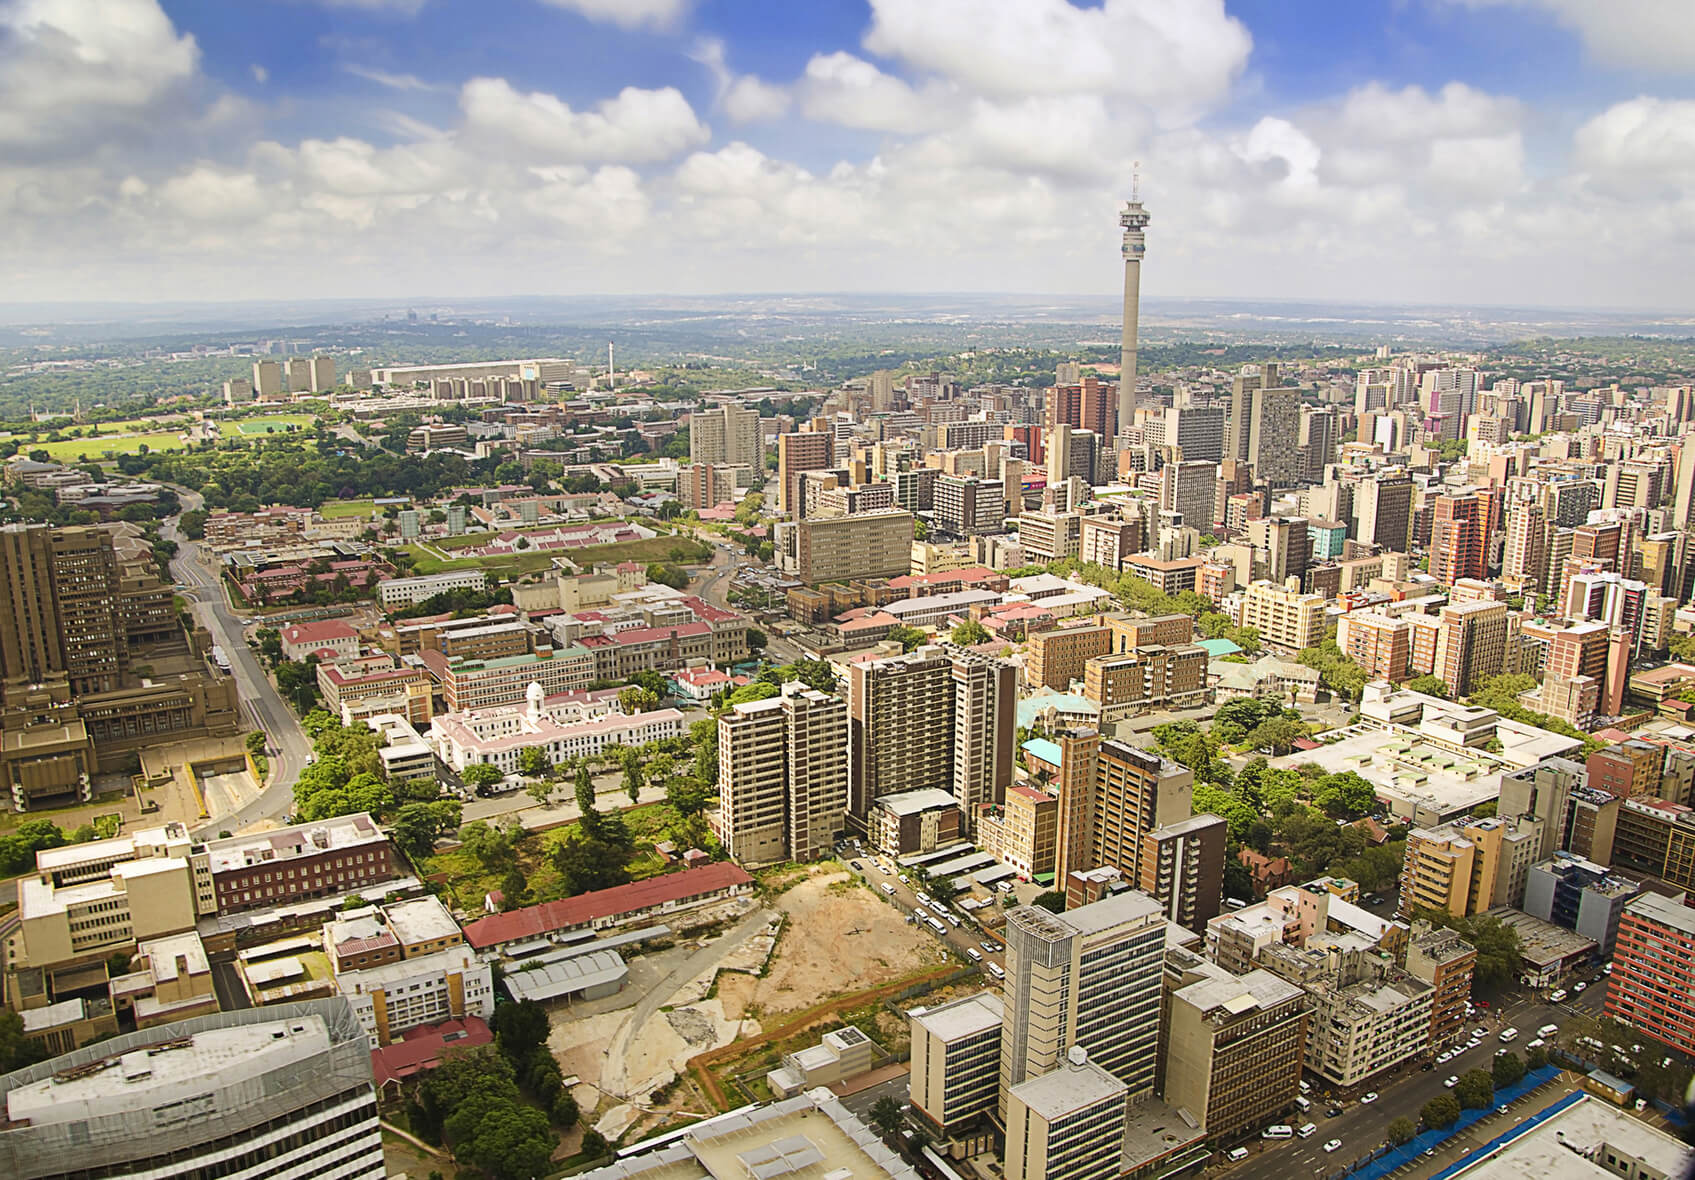 Swiss cities to Johannesburg, South Africa from only €320 roundtrip